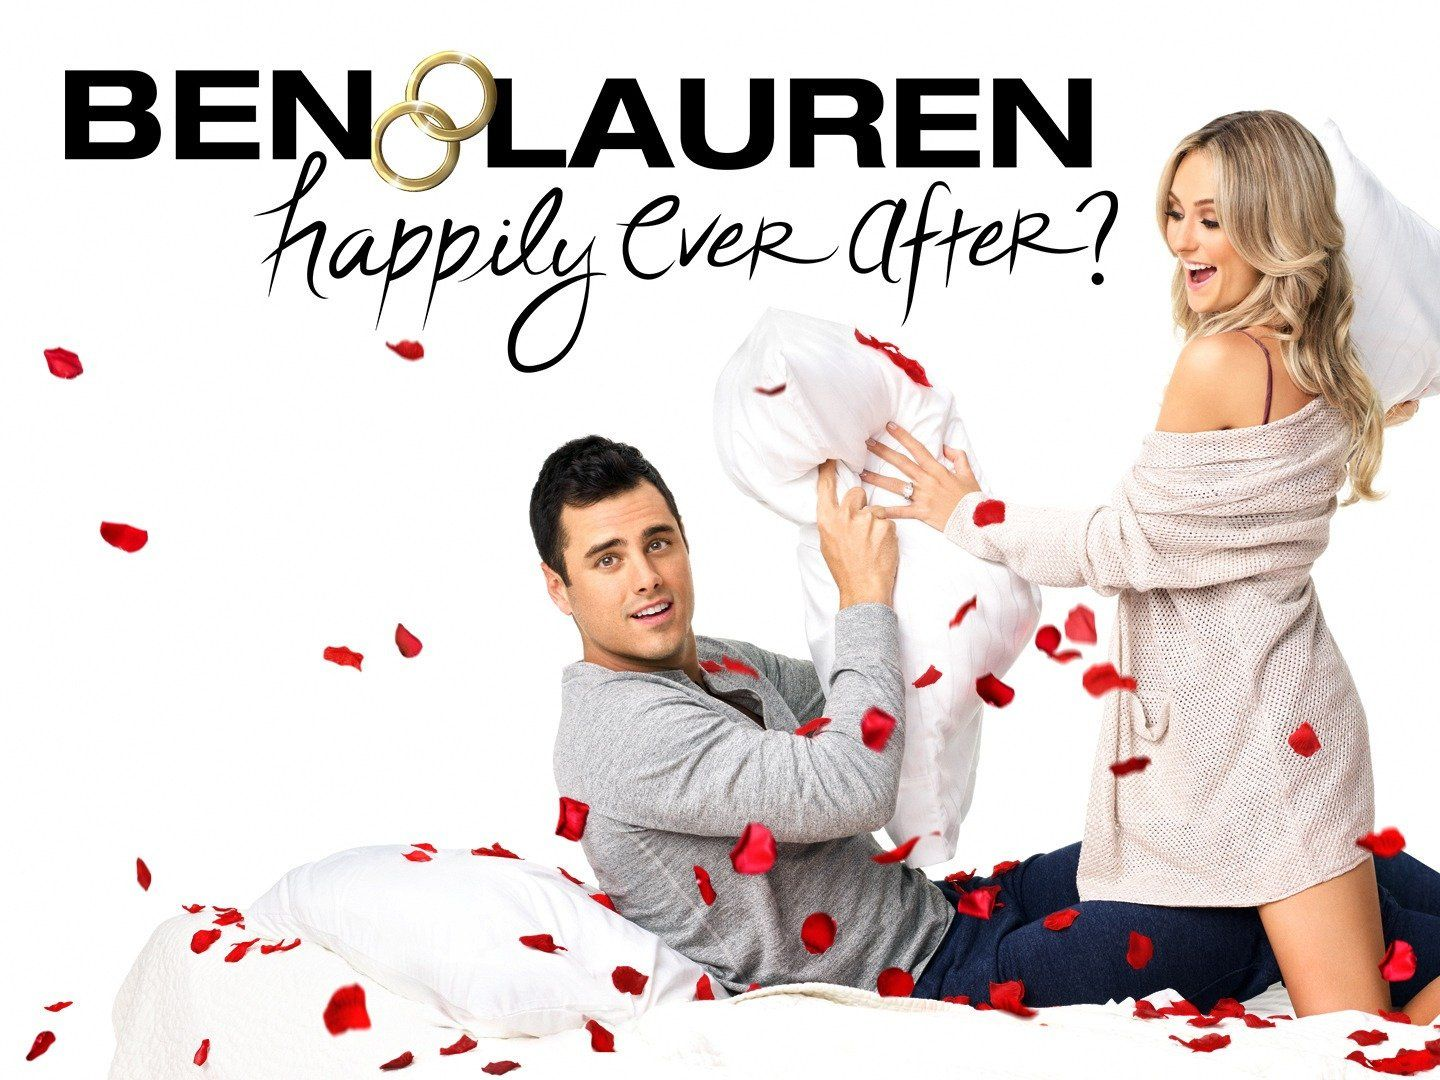 ���� - Freeform is yet to renew Ben and Lauren: Happily Ever After? for season 2